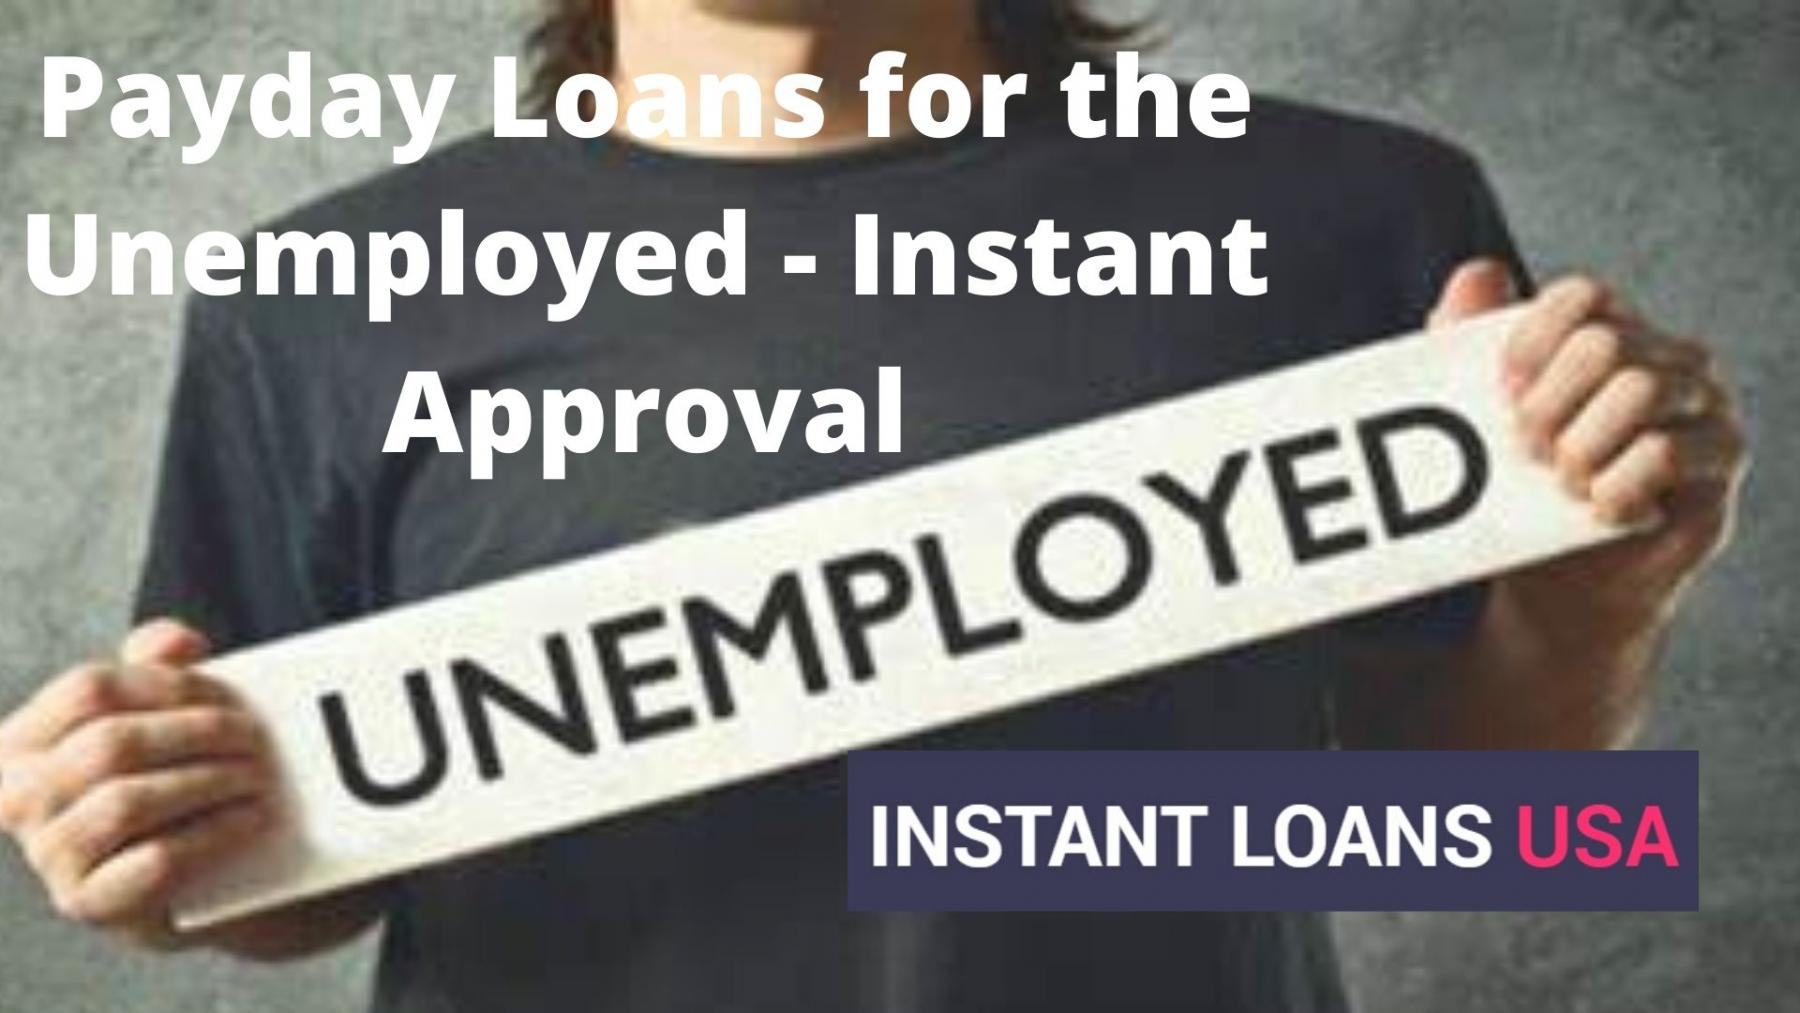 payday loans instant approval for unemployed